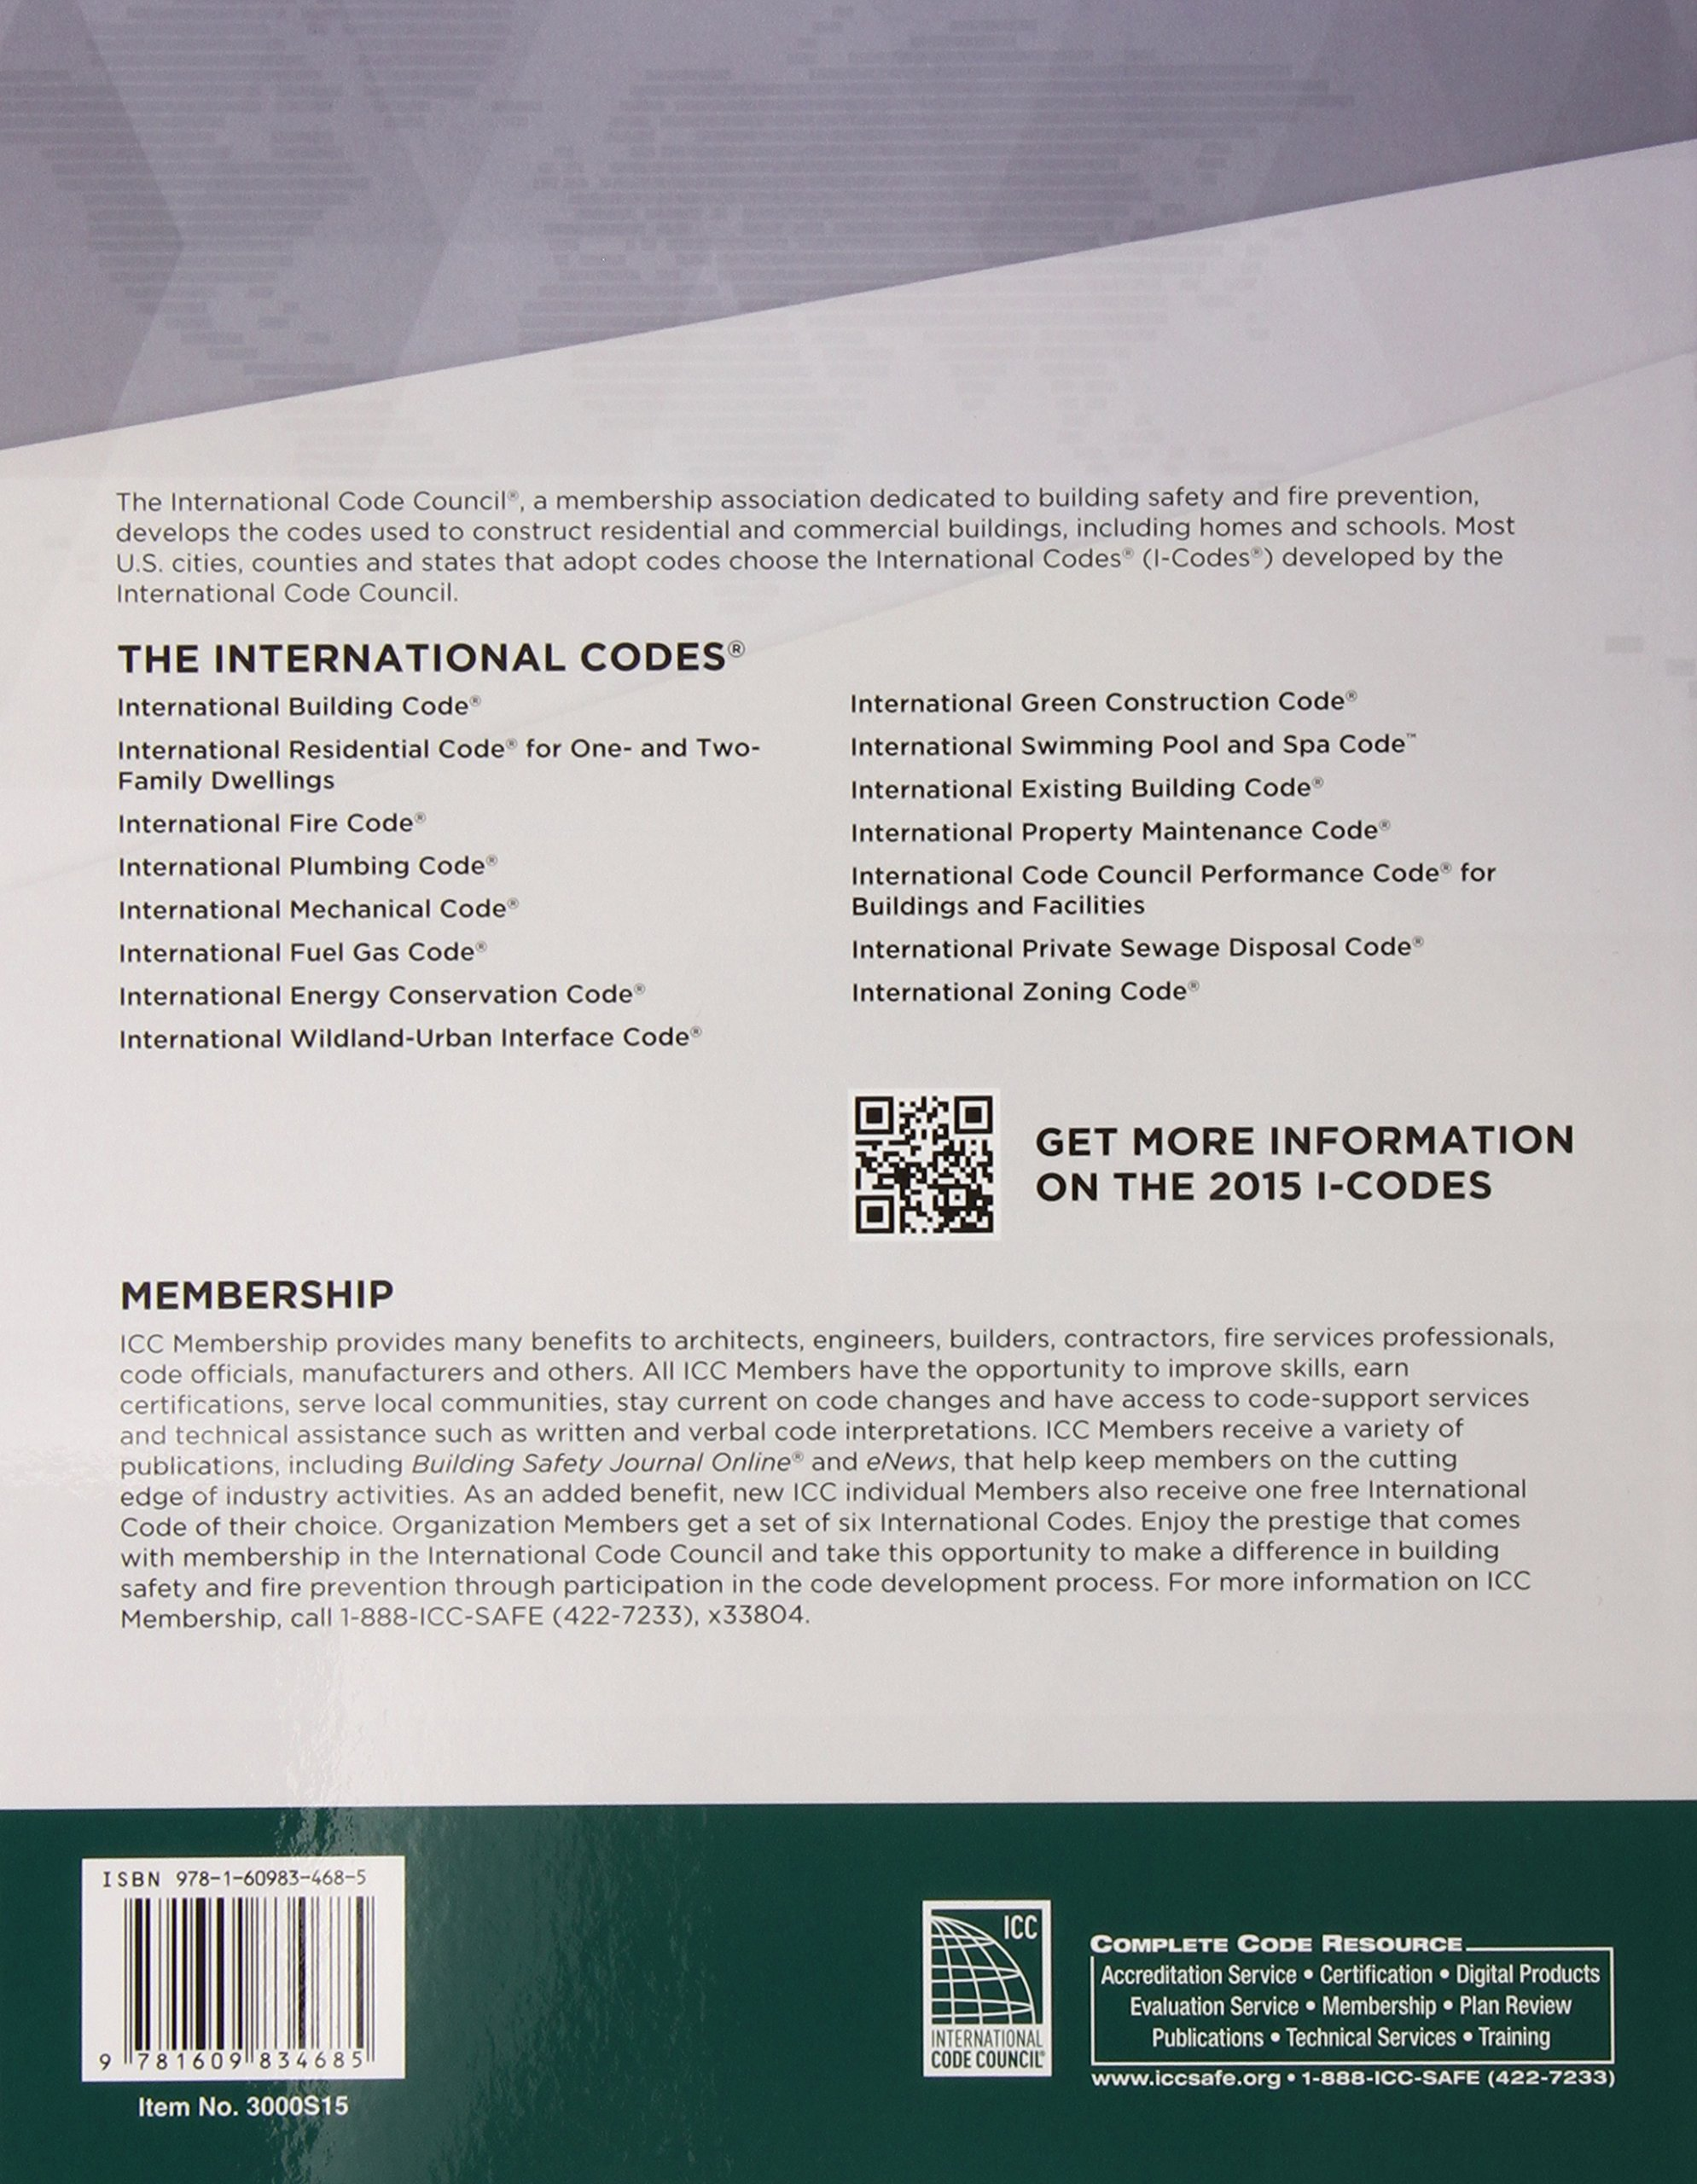 2015 International Building Code by ICC (distributed by Cengage Learning)